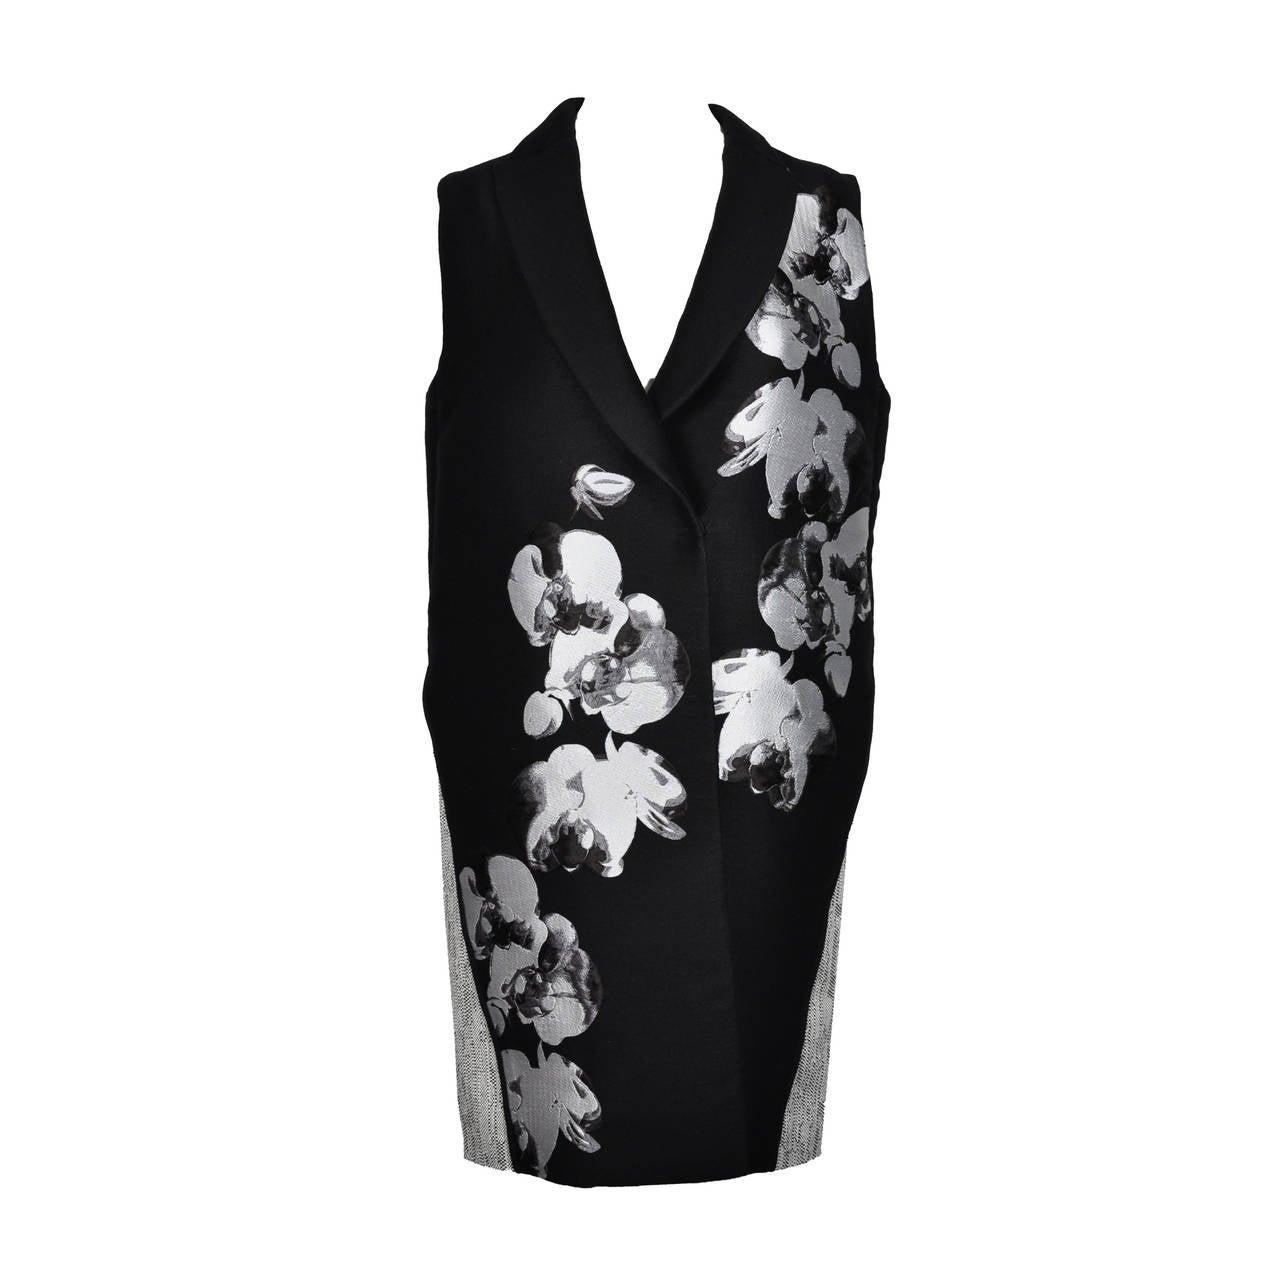 Fendi 2015 S/S Collection Orchid Jacquard Tweed Long Vest New